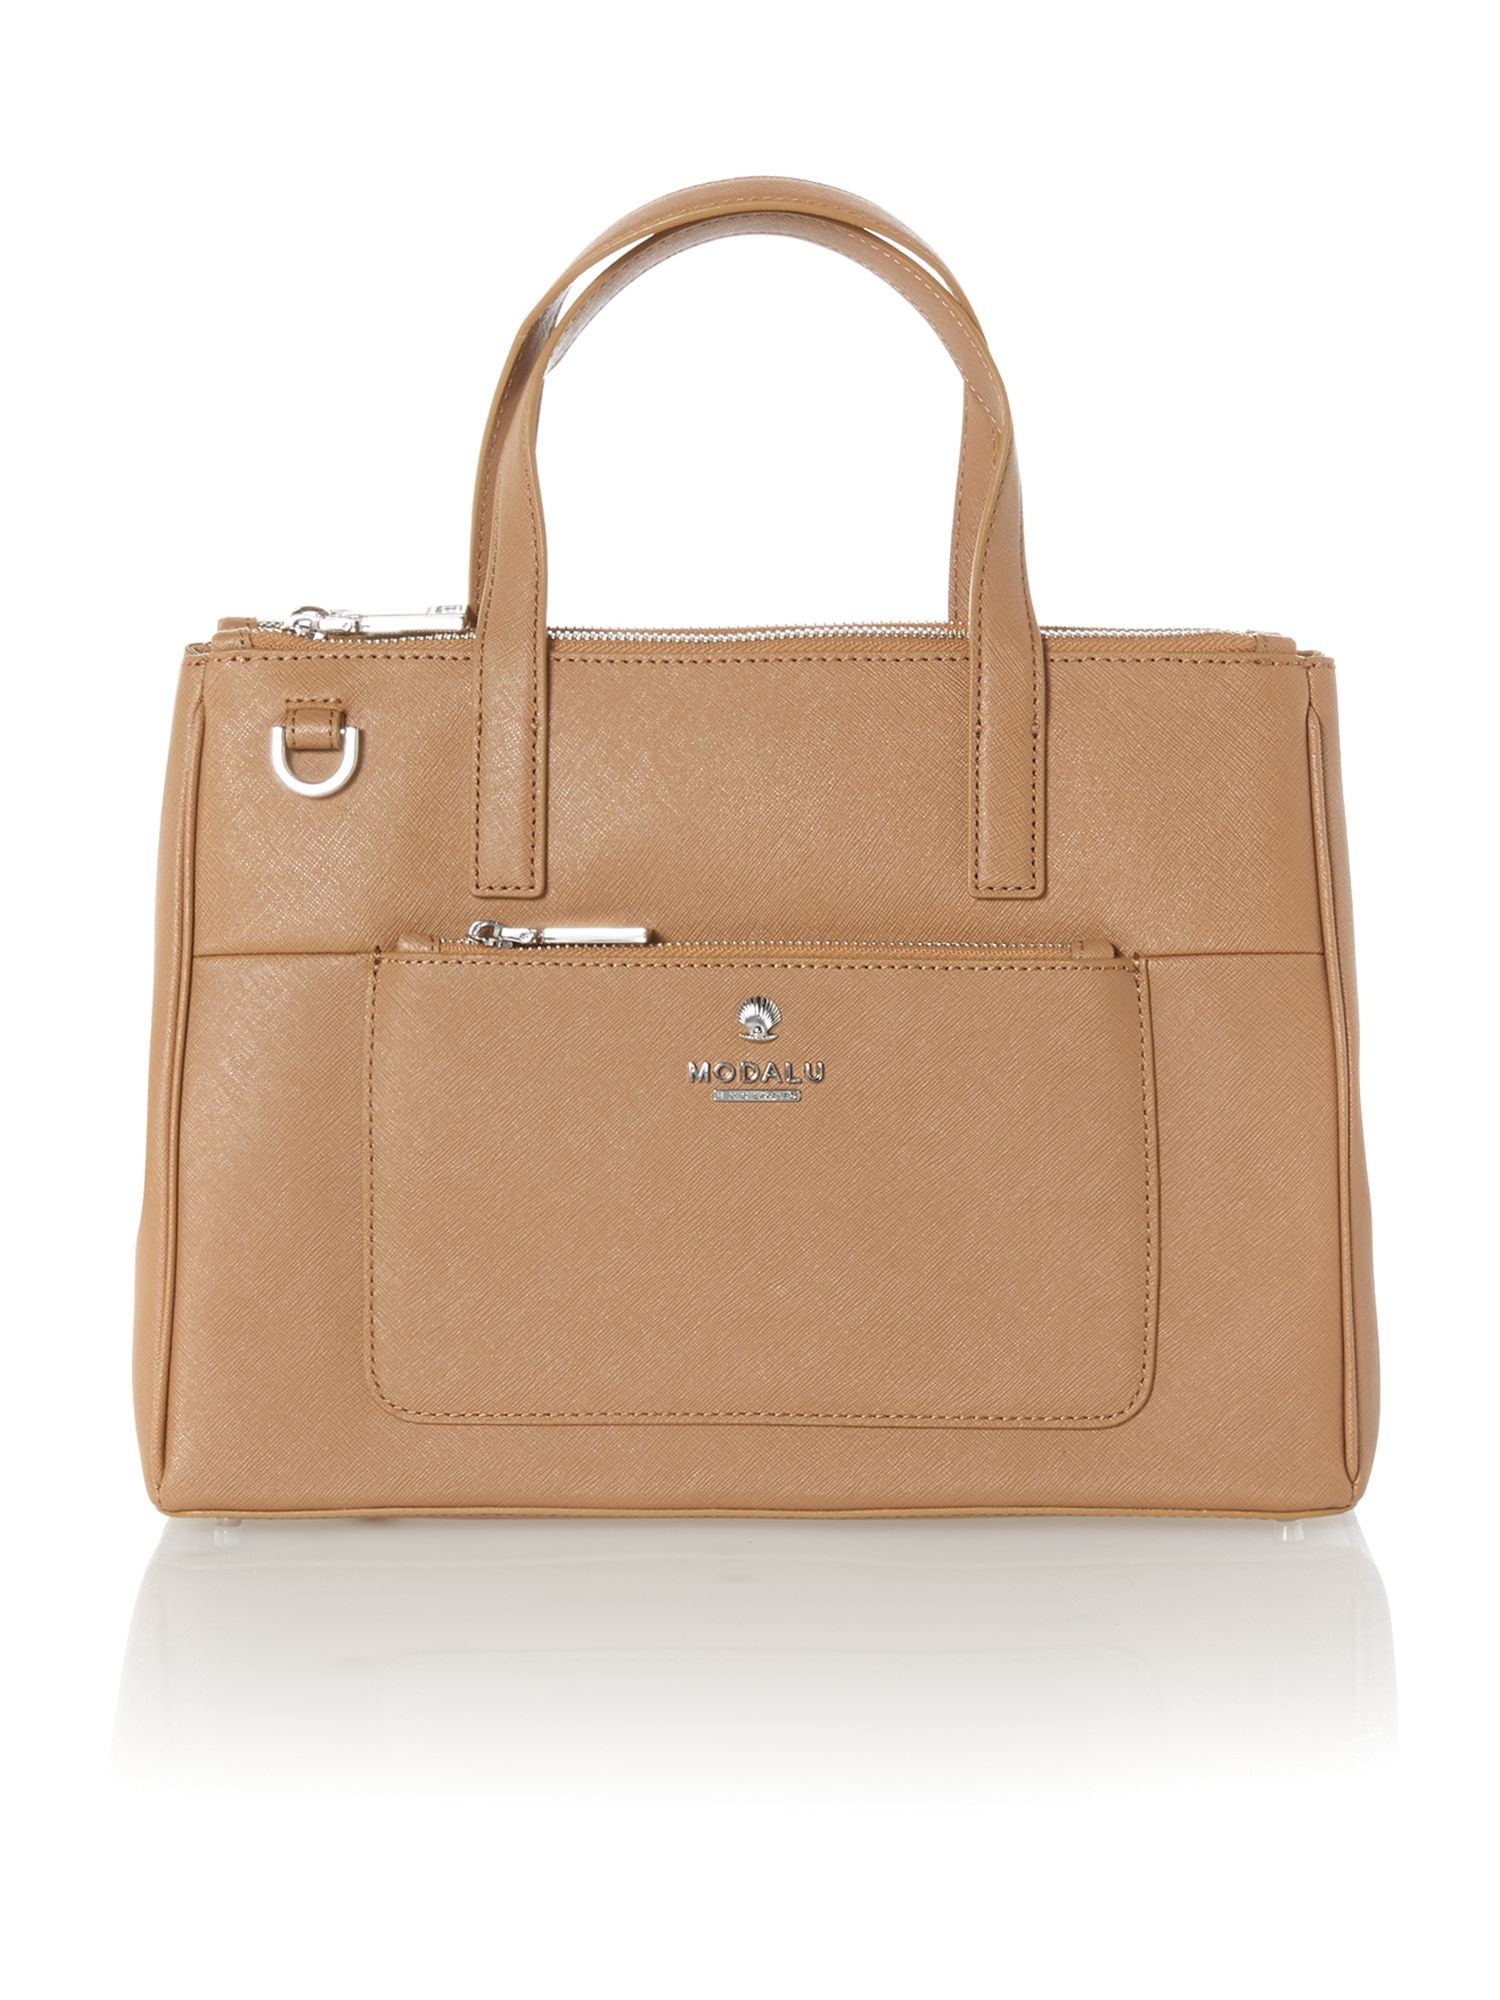 Phoebe taupe medium saffiano tote bag